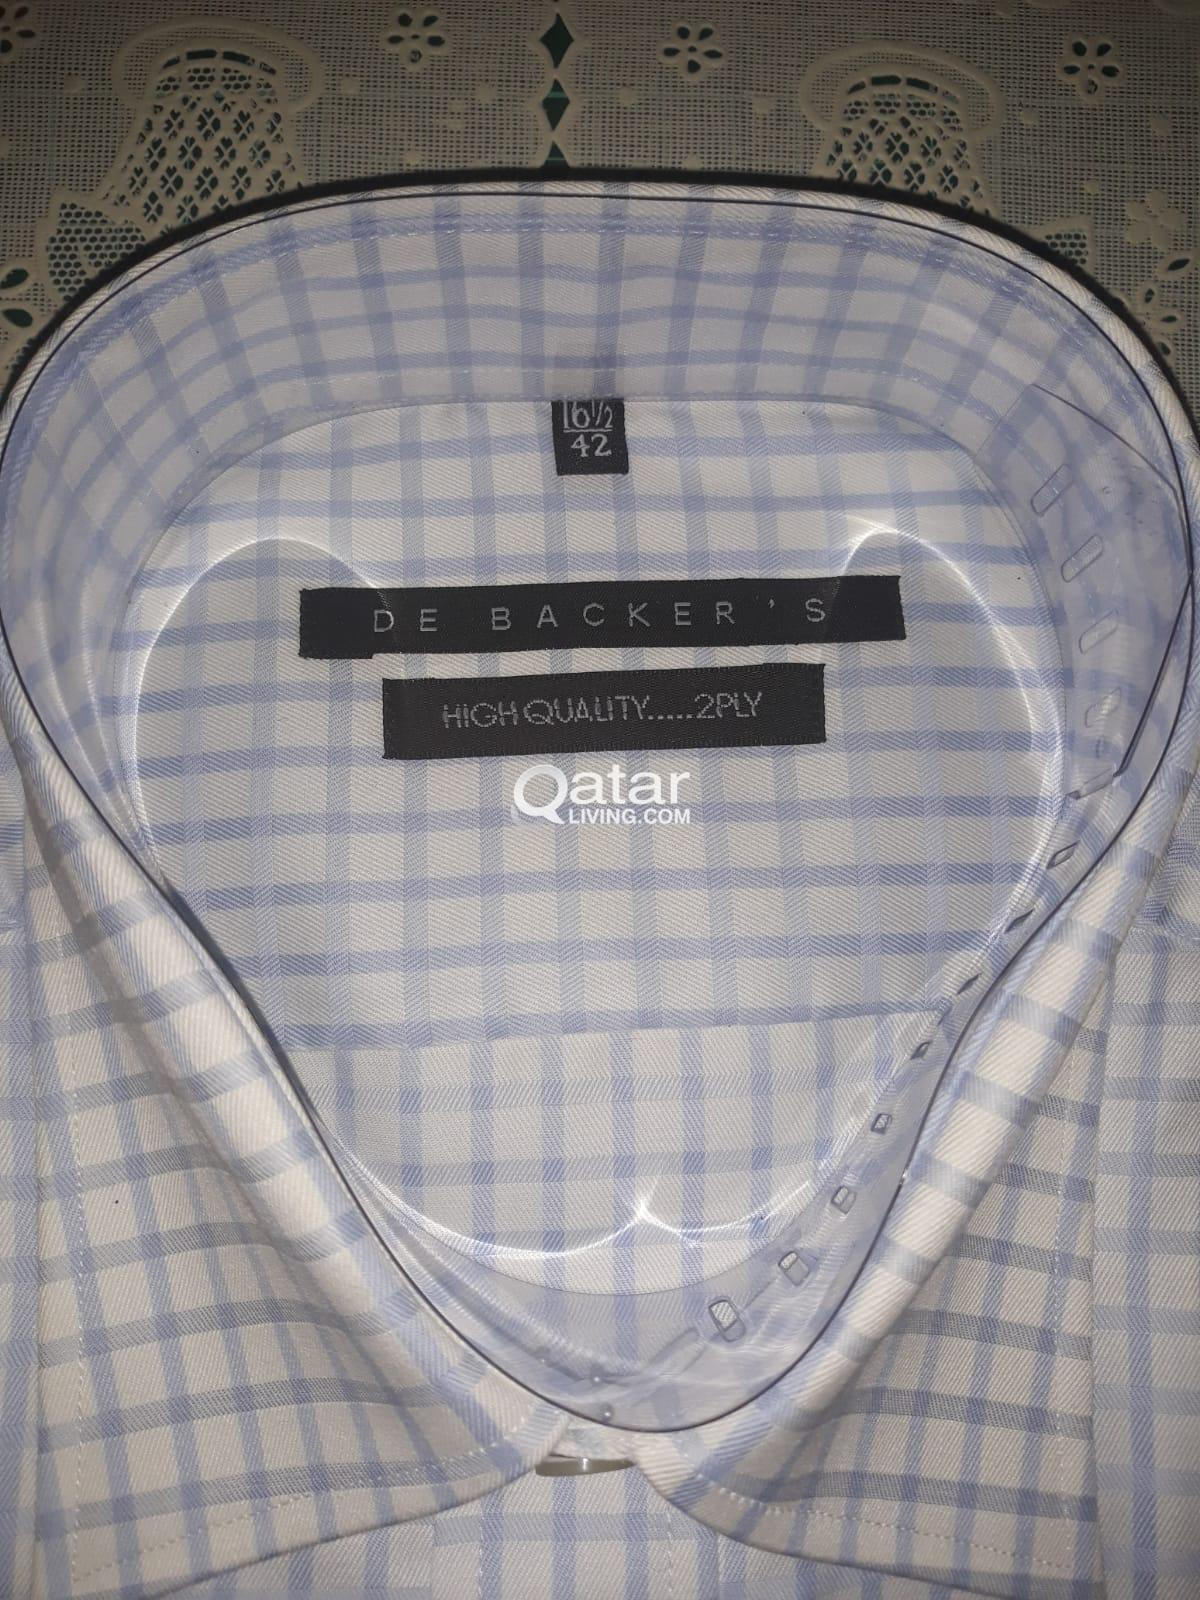 Used Clothing & Accessories for sale in Doha Qatar | Qatar